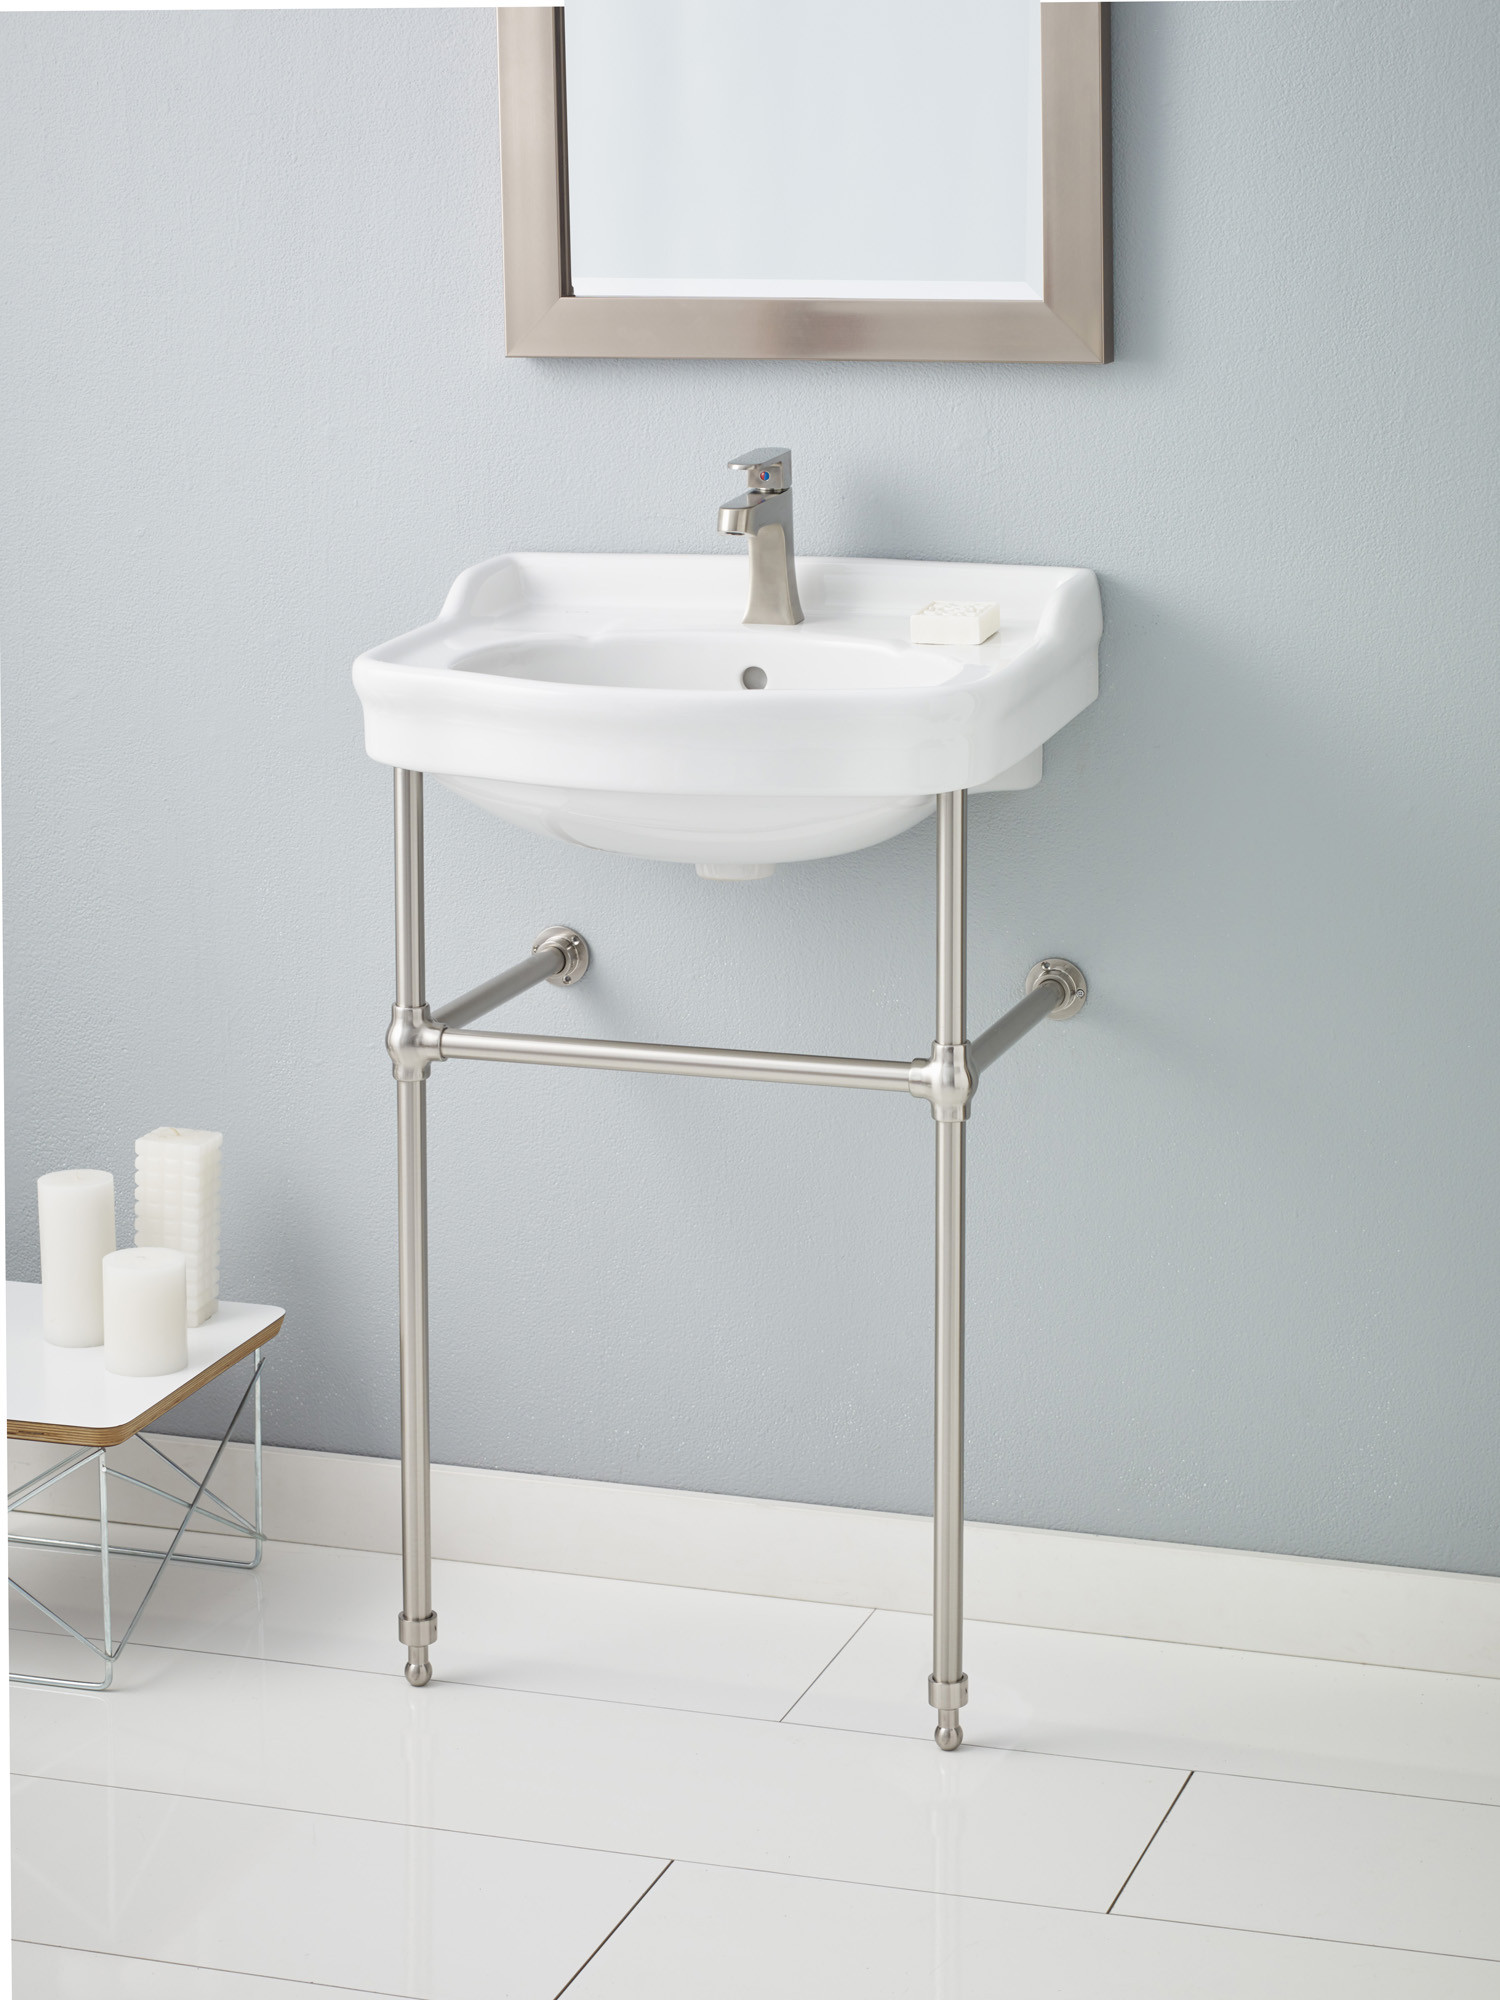 Cheviot 350-22-WH-4-575-BN Antique Brushed Nickel Console Stand Lavatory Sink in White